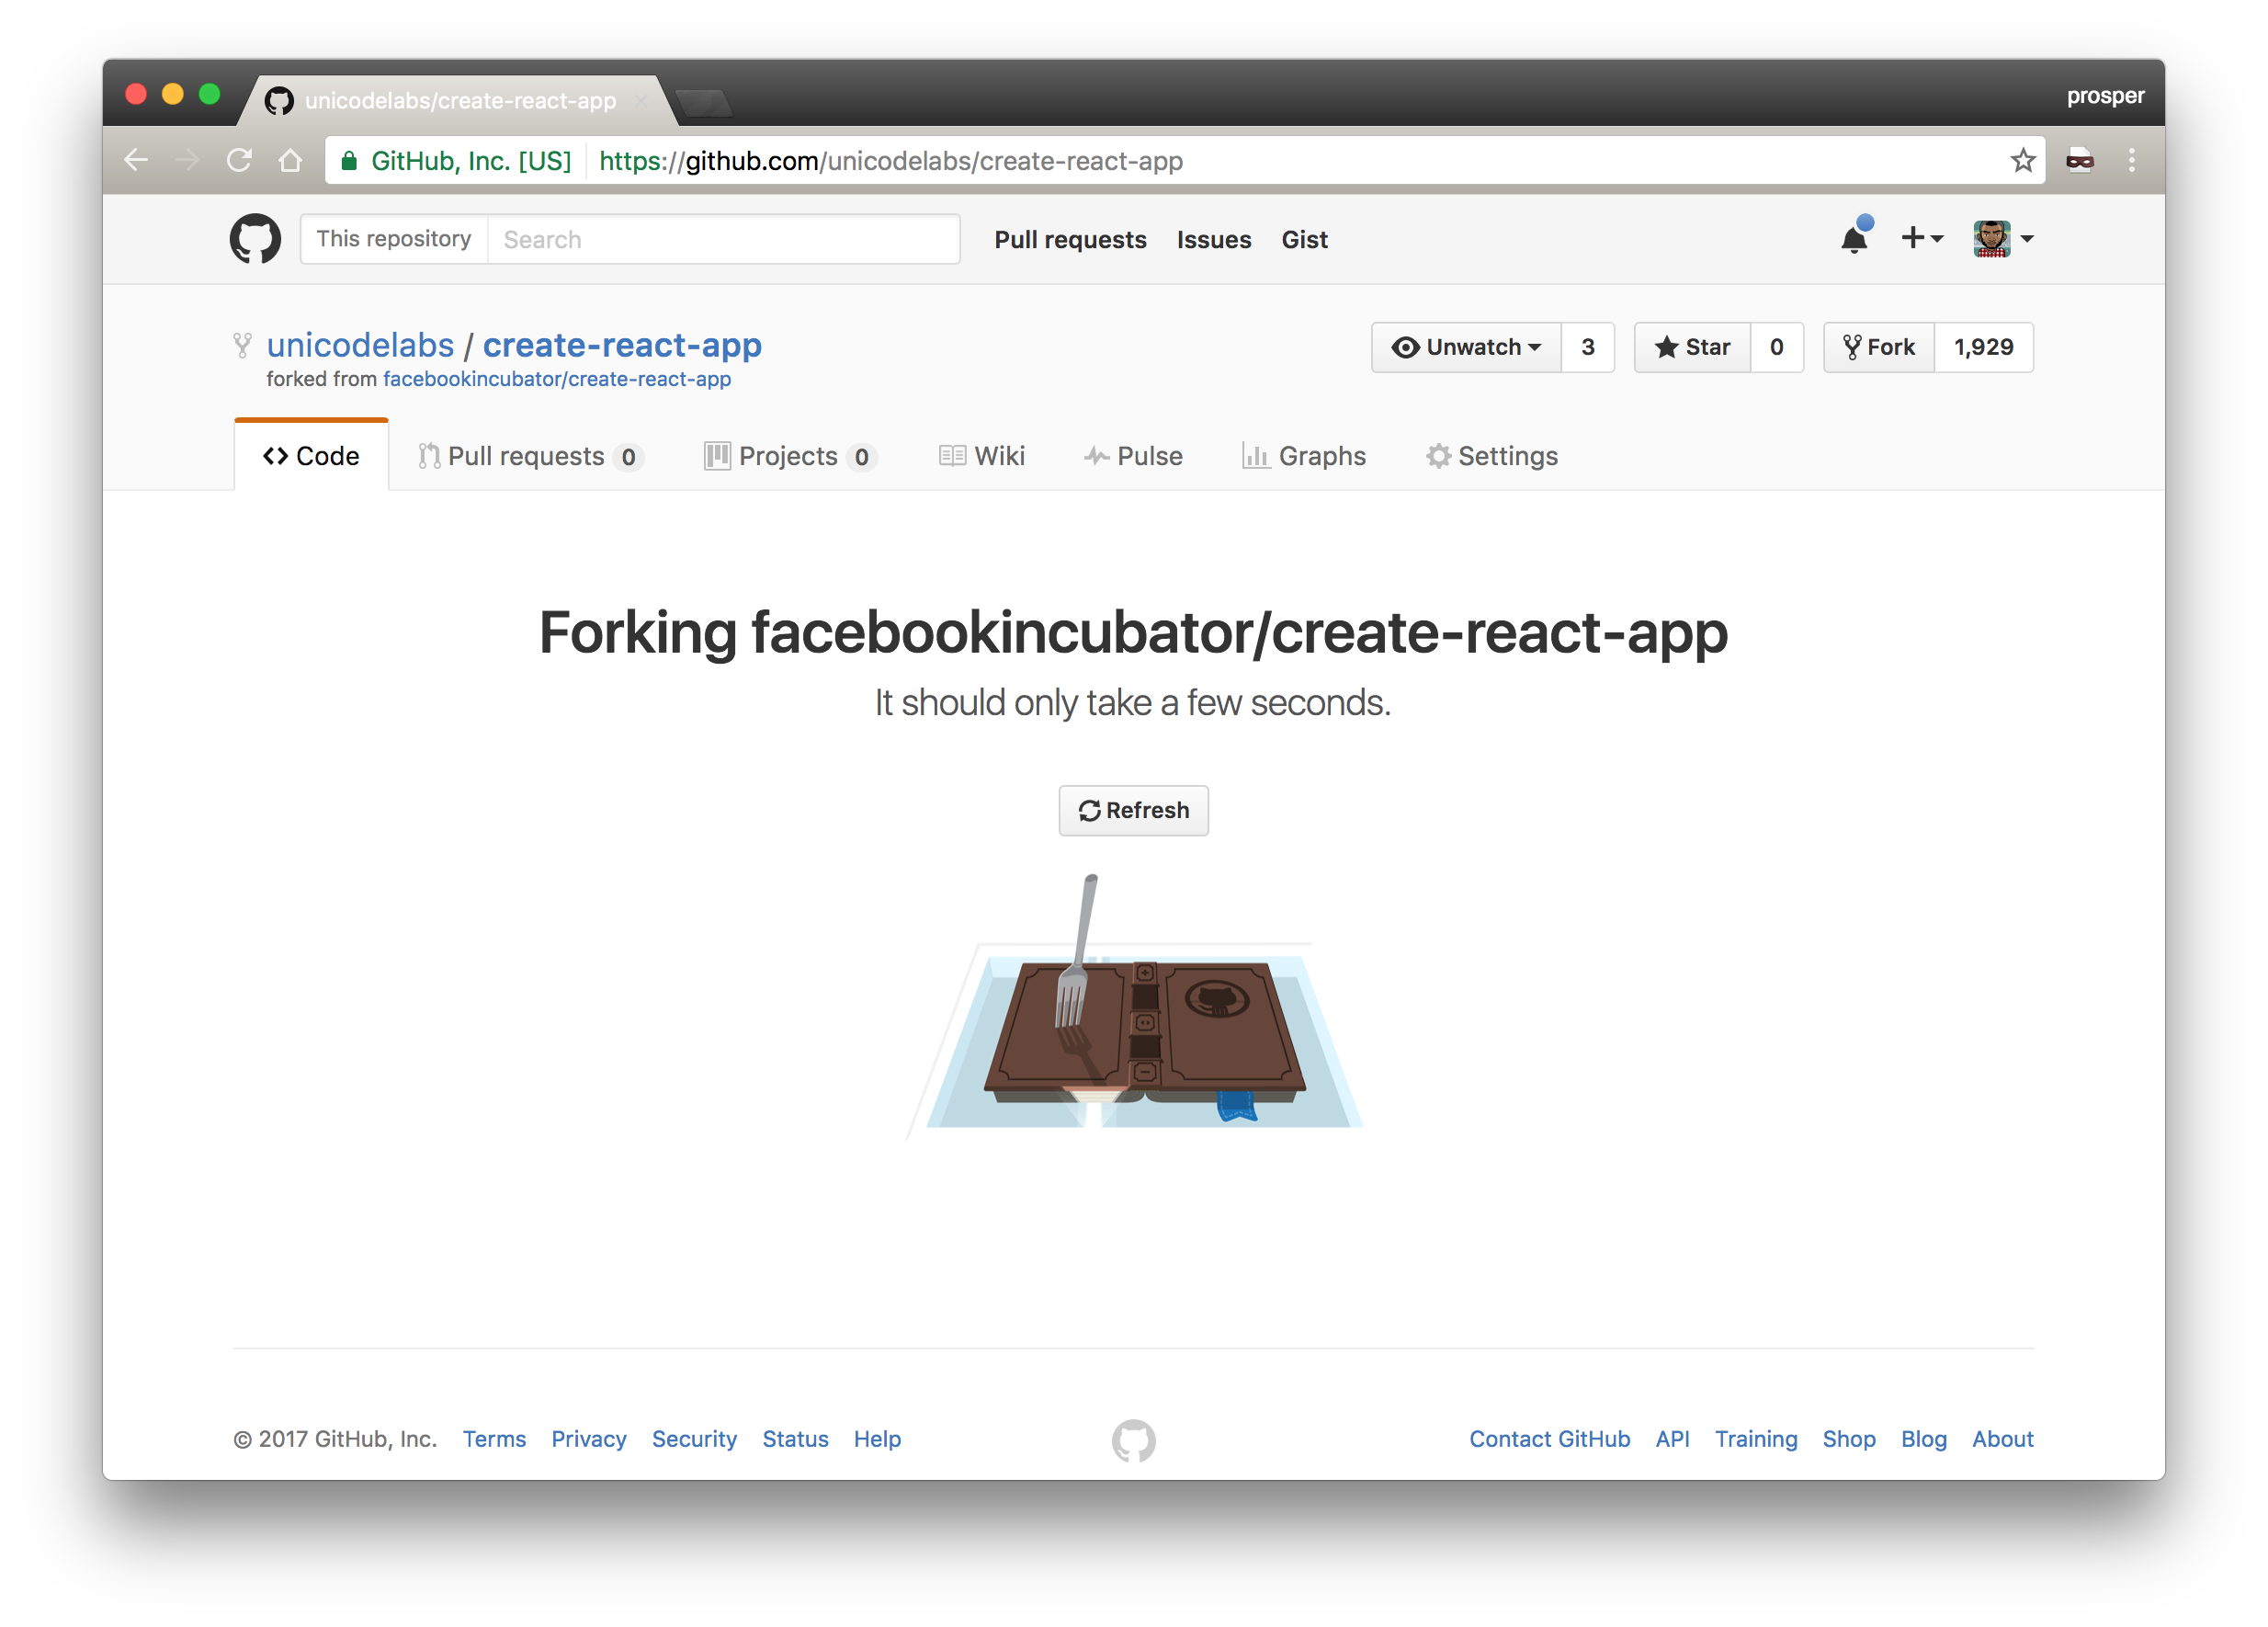 Creating a fork of create-react-app